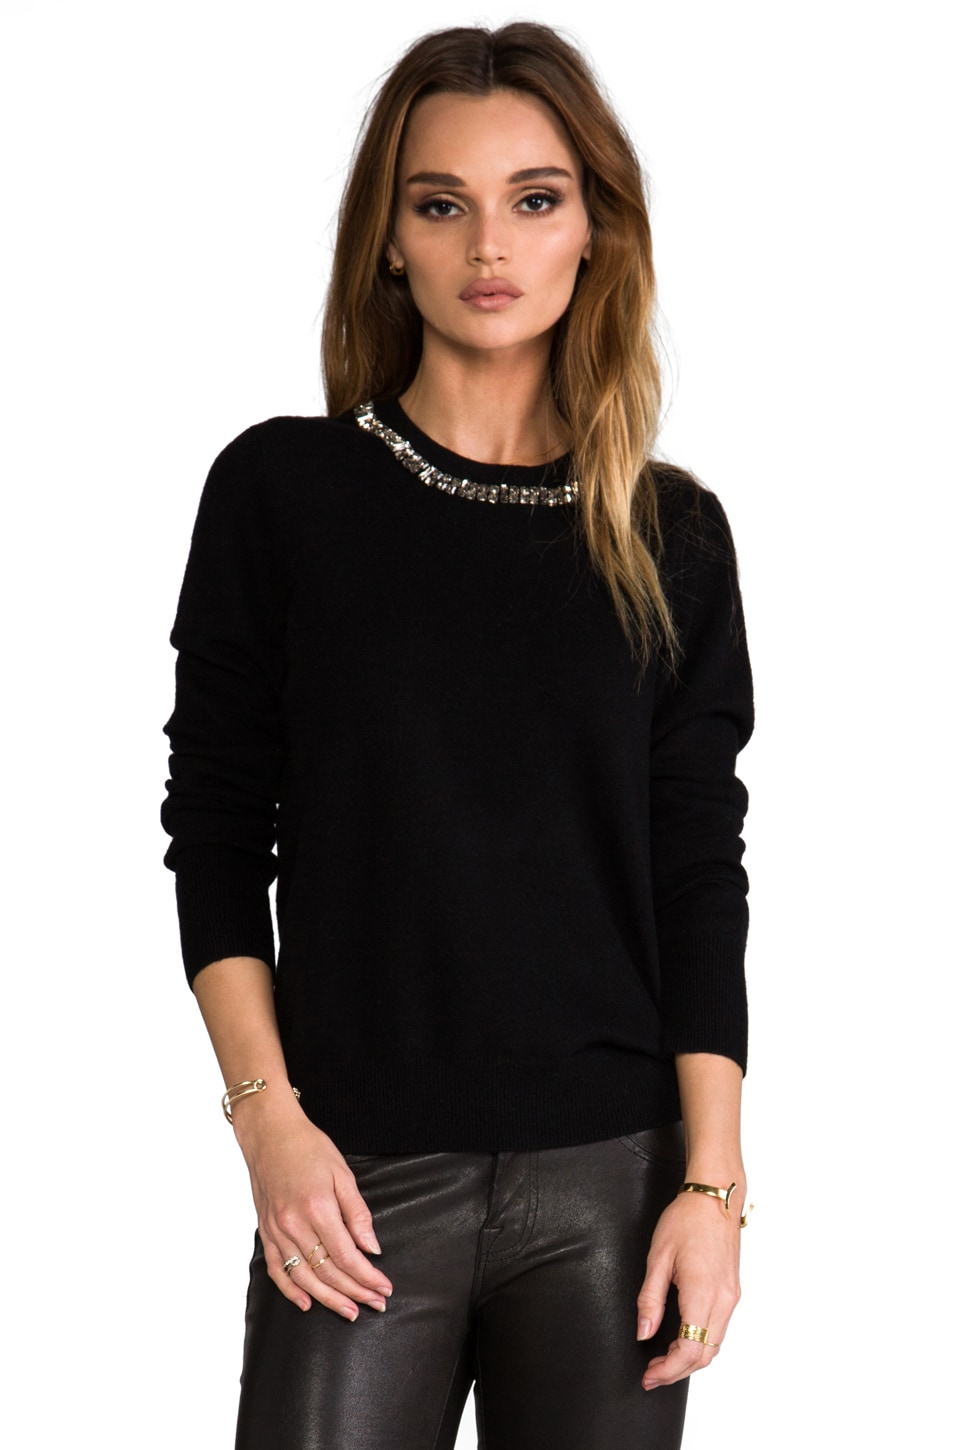 Equipment Shane Pullover w/ Embellished Neck in Black